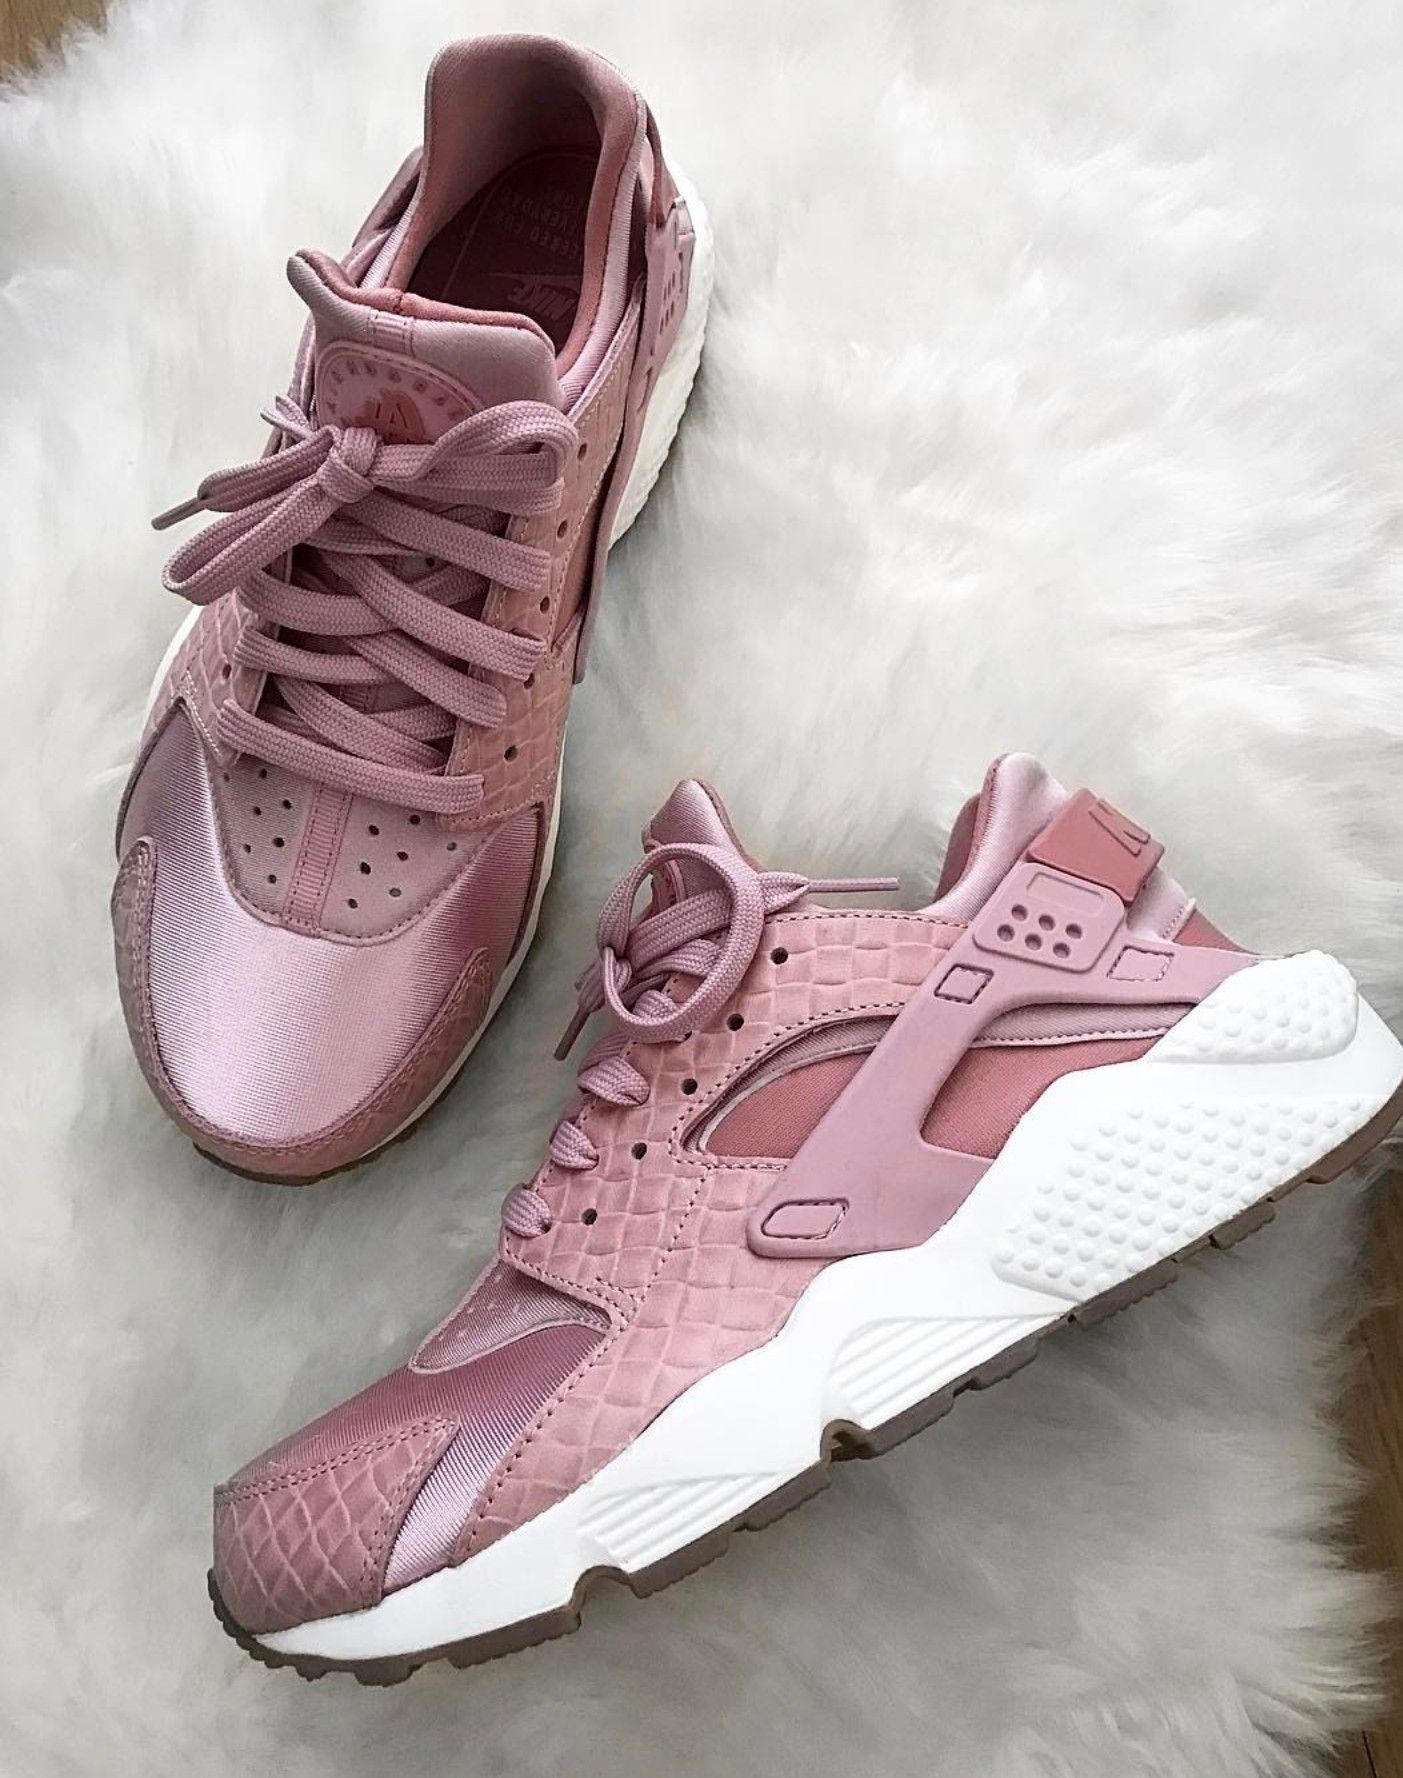 best sneakers 65489 abddf Nike Huarache in rosa   Foto  fashionthingsbylisa  Instagram